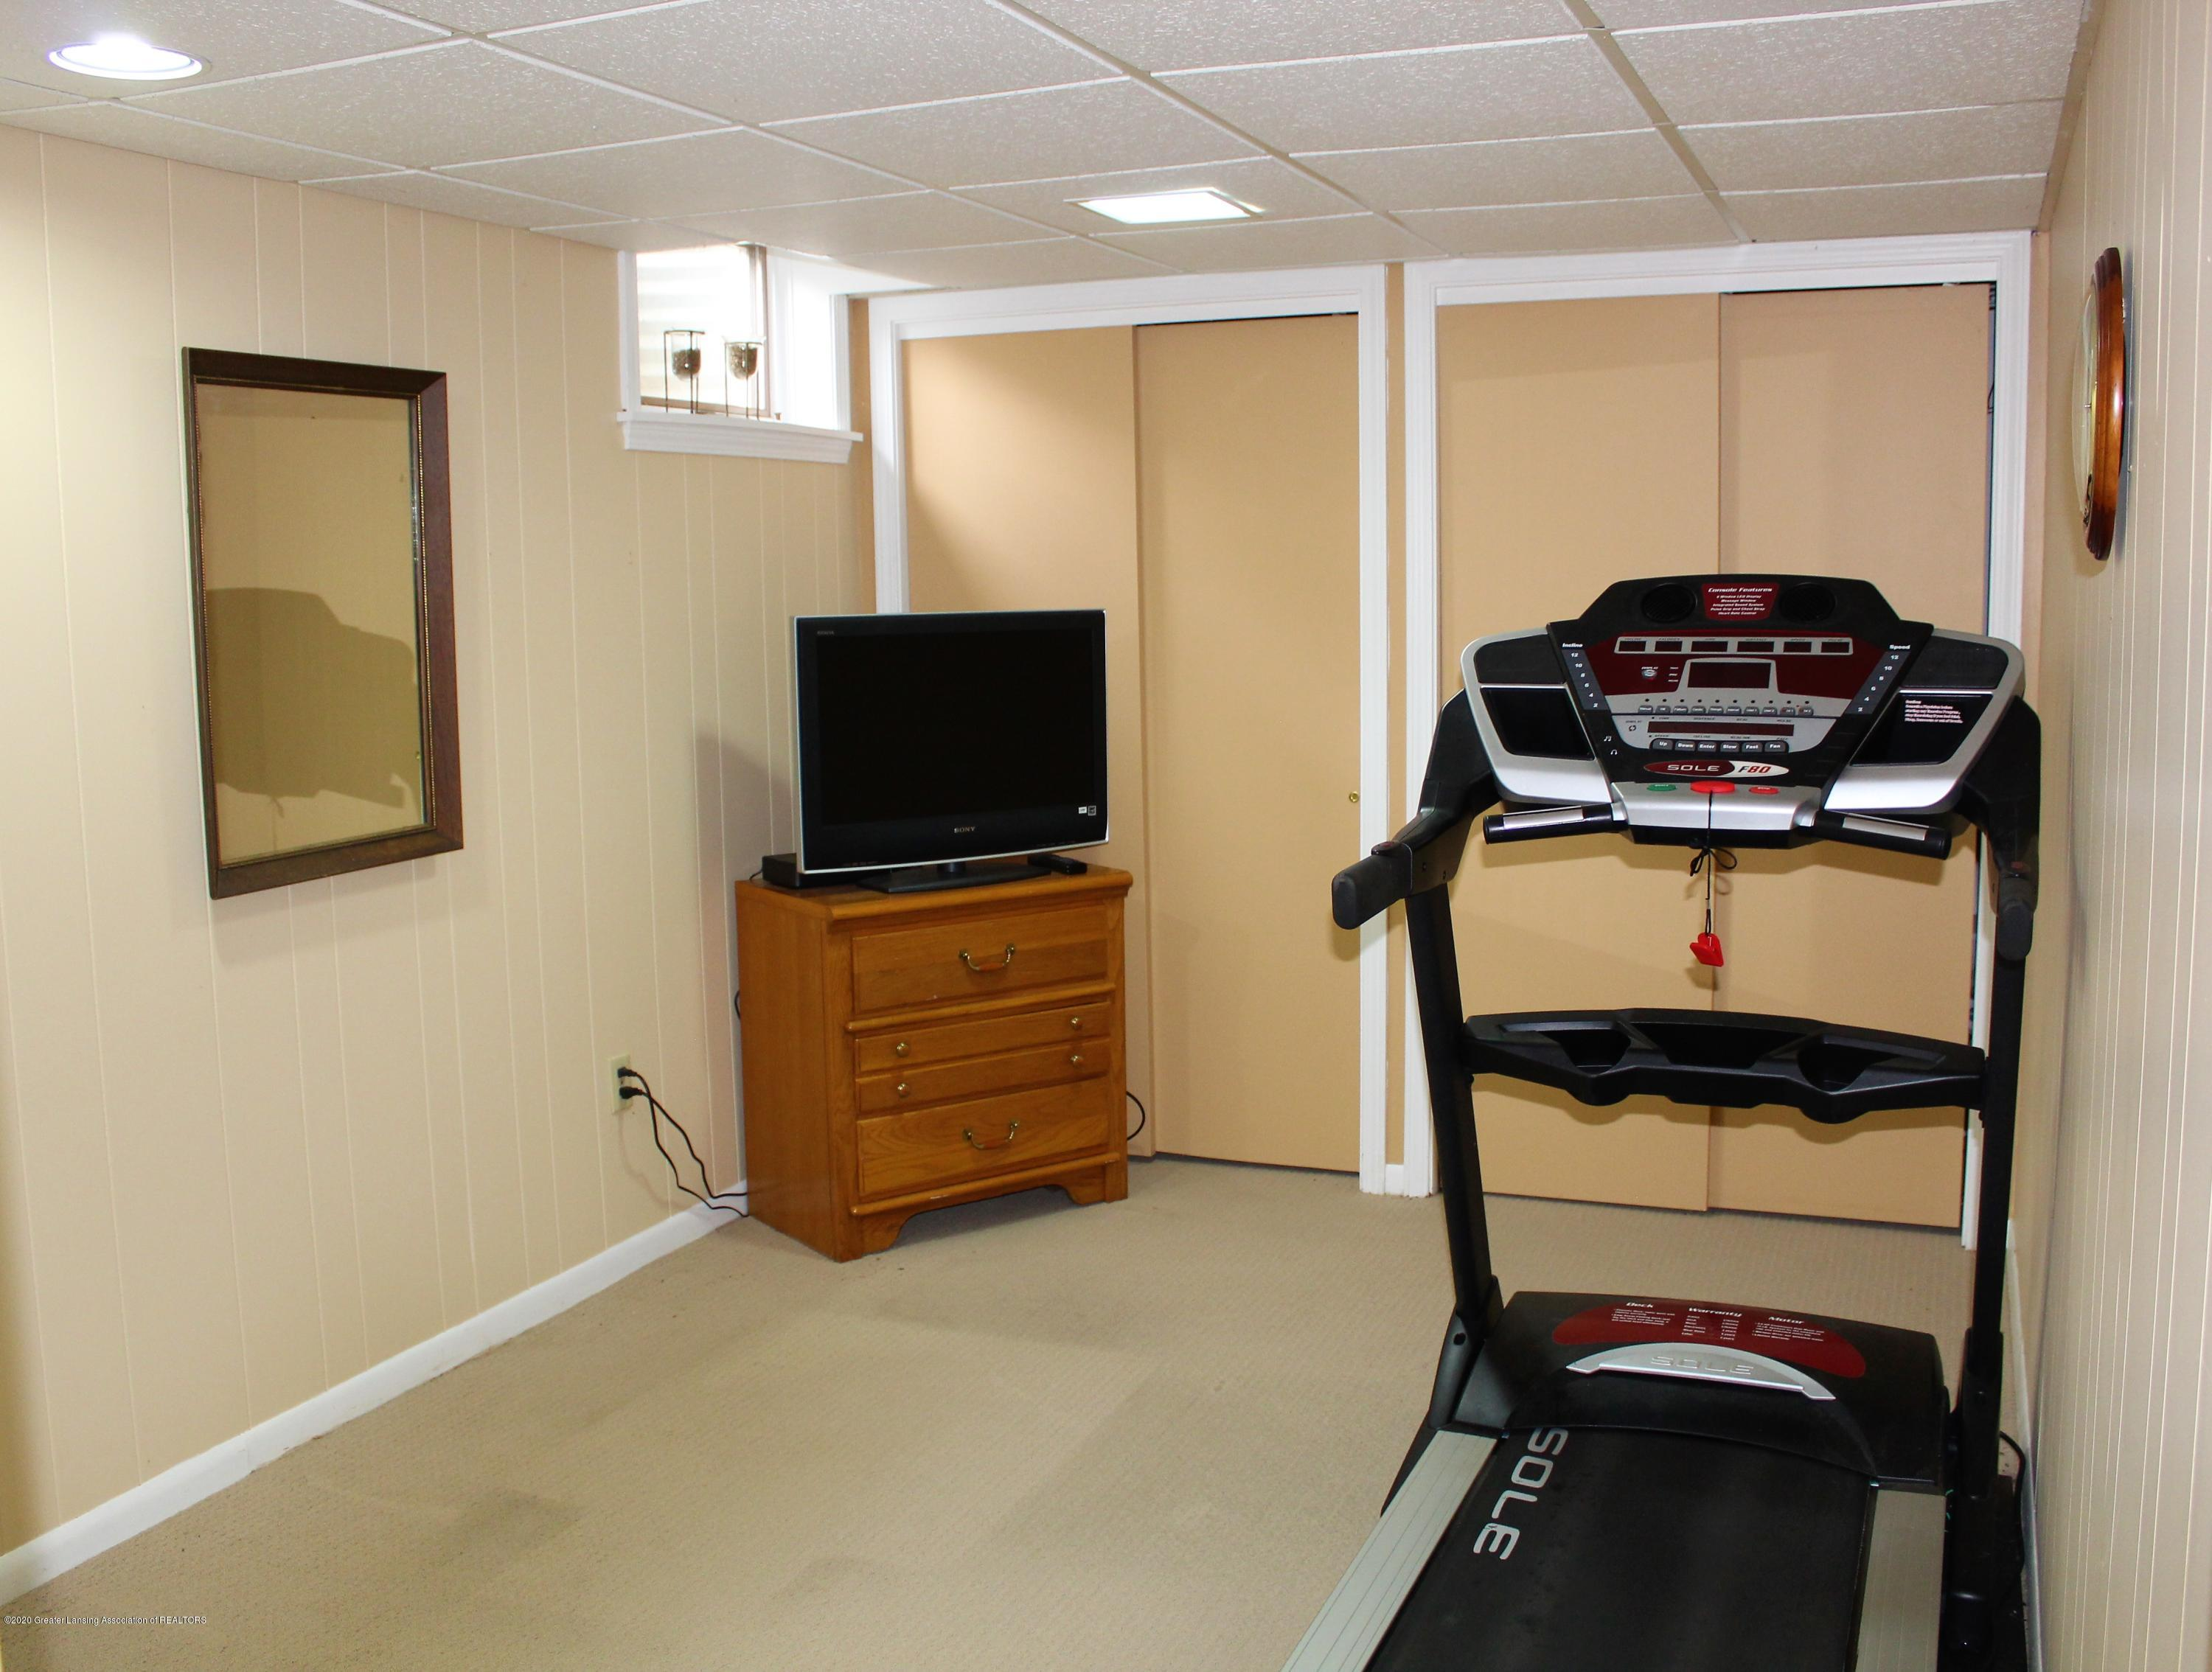 3599 W Arbutus Dr - LL Bedroom 4/Workout Room - 36